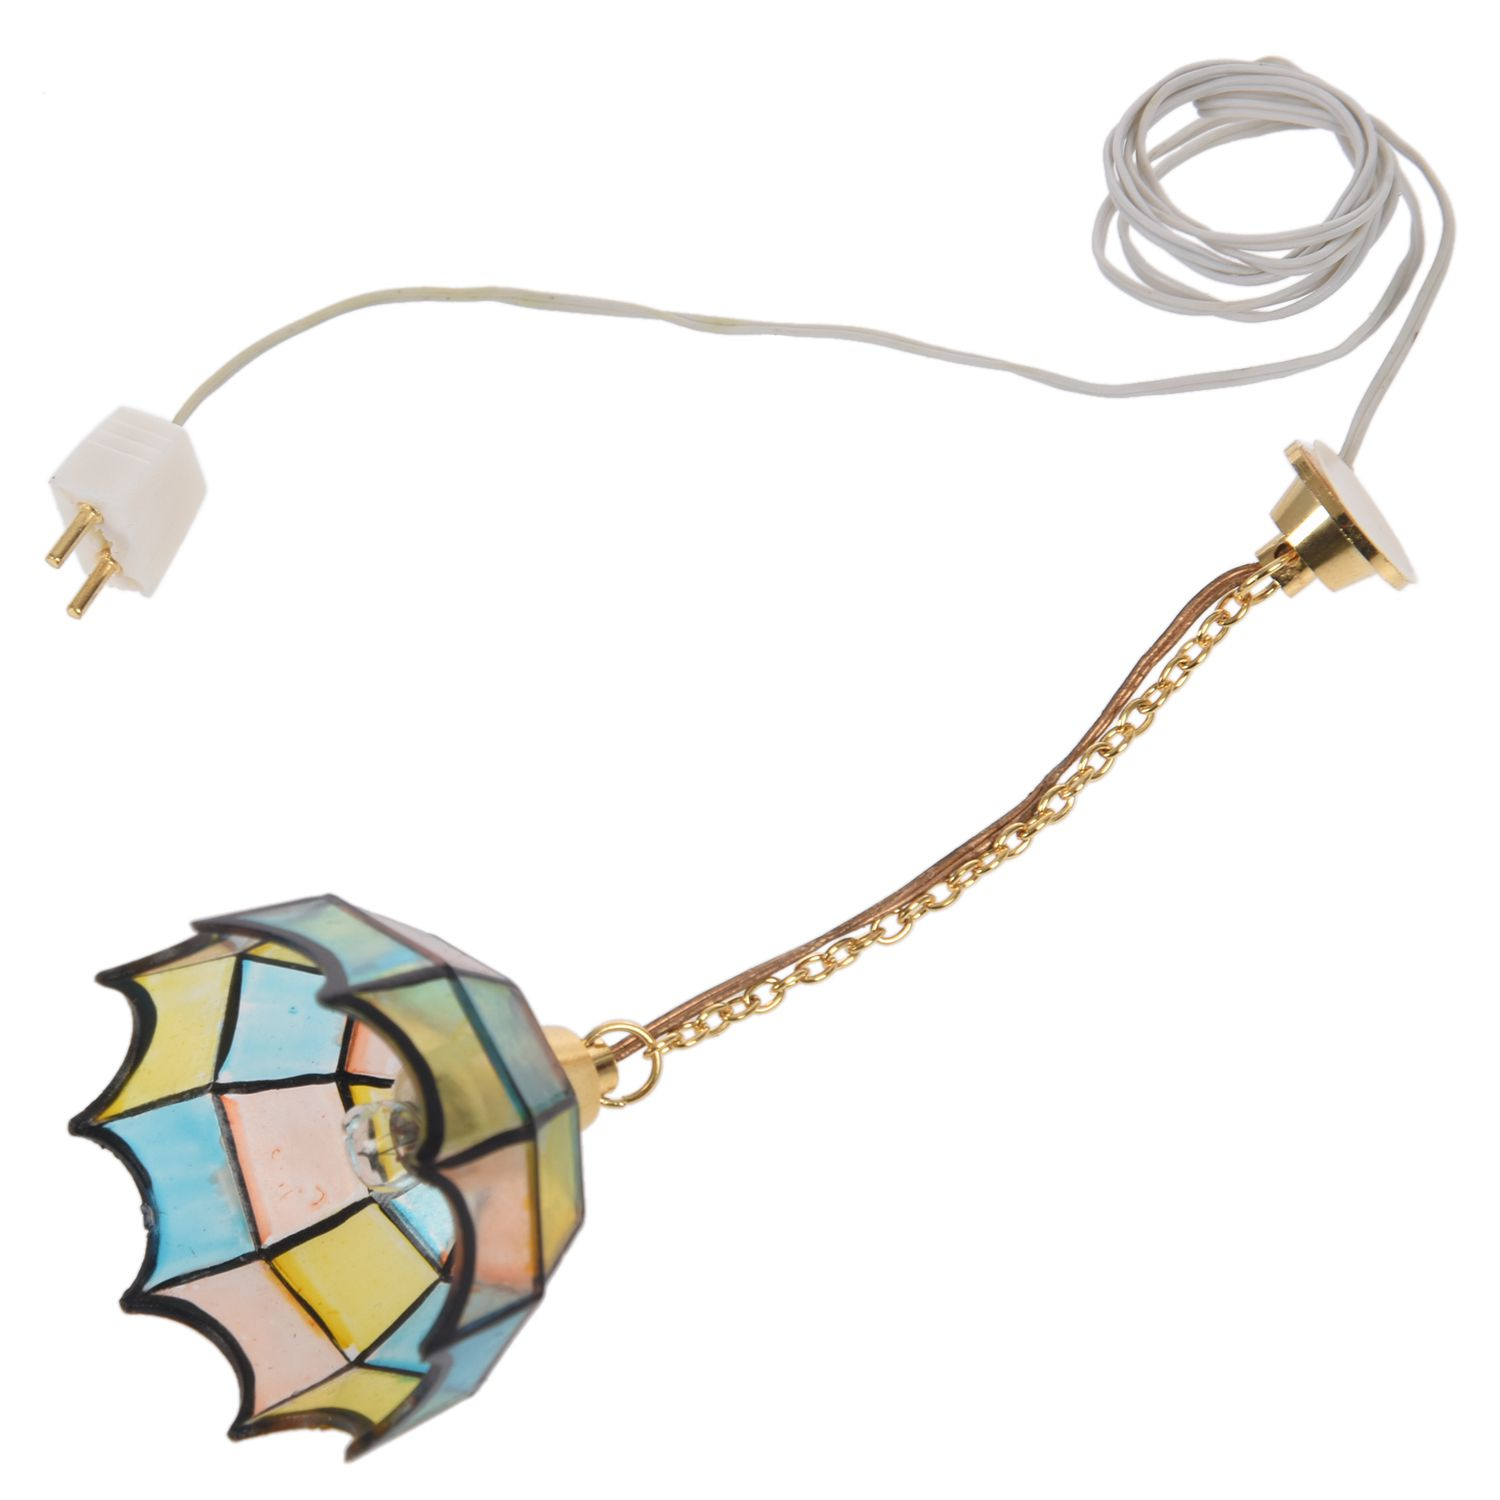 Doll house miniature beautiful color ceiling lamp light Hanging lamps(China)